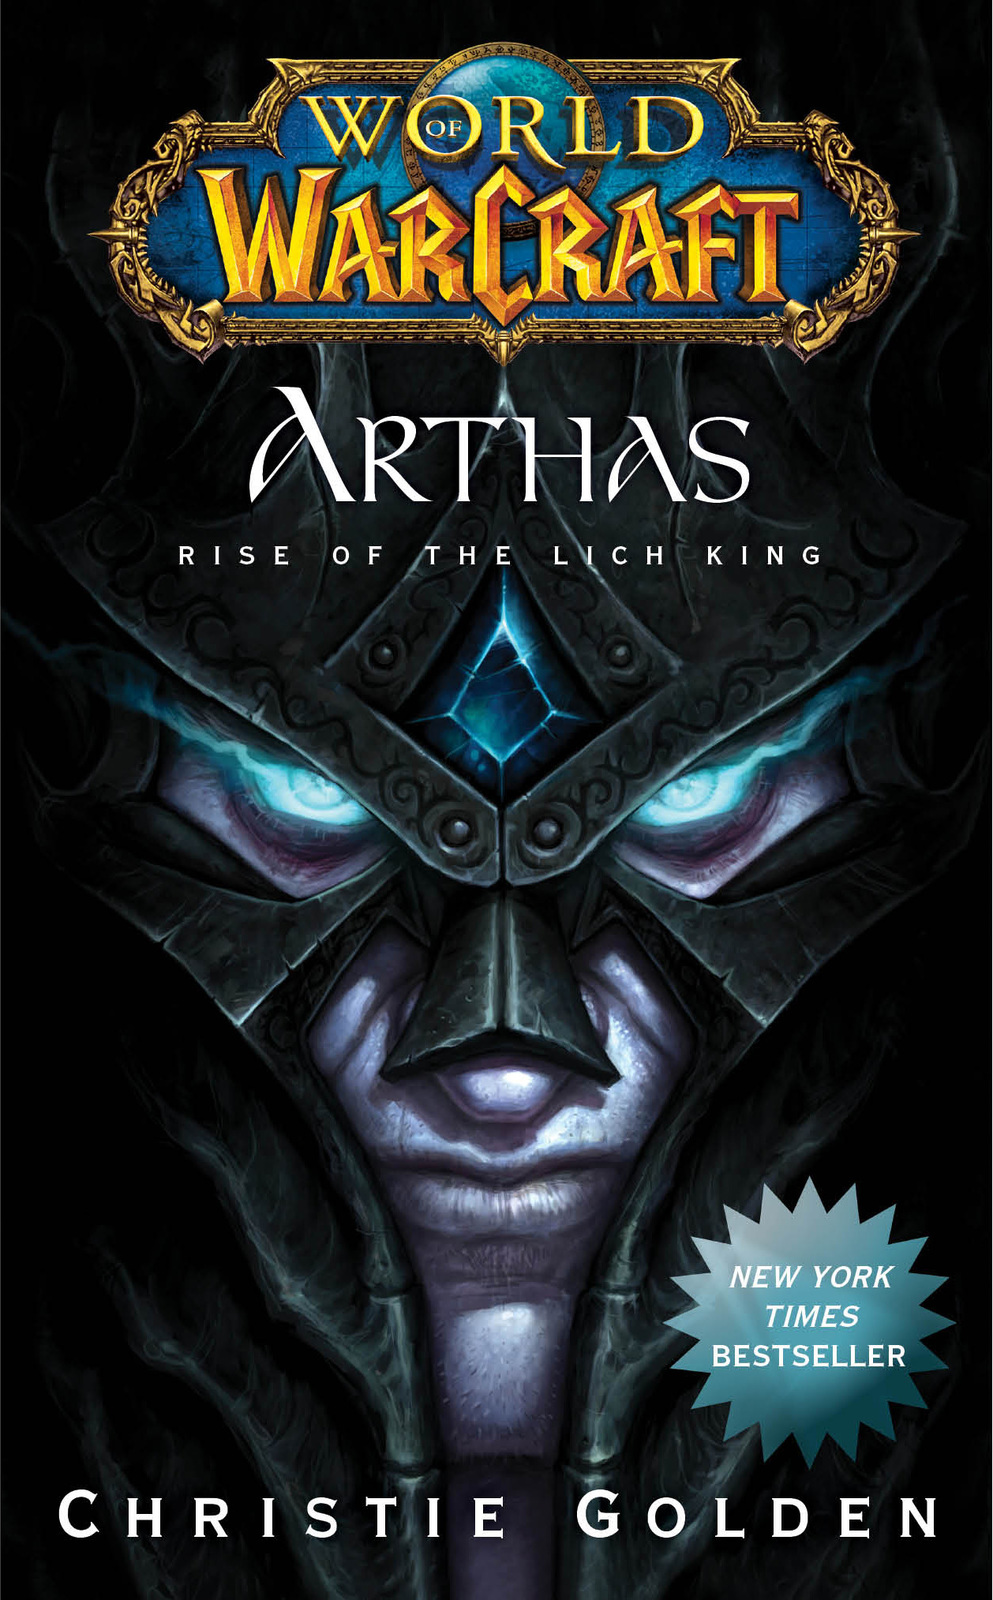 World of Warcraft: Arthas: Rise of the Lich King by Christie Golden image